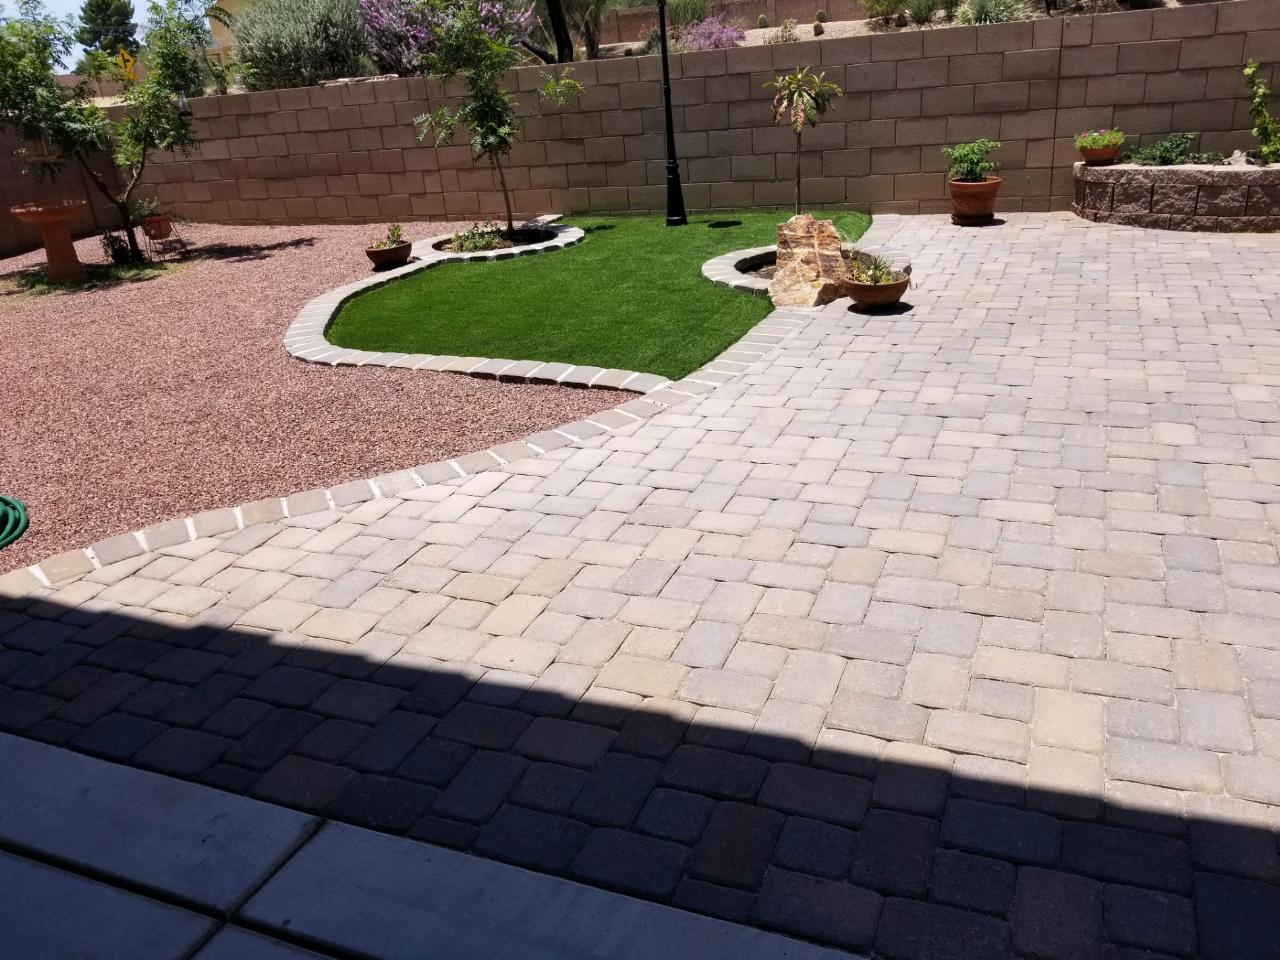 Paver Patio, Gravel, Turf and Planter